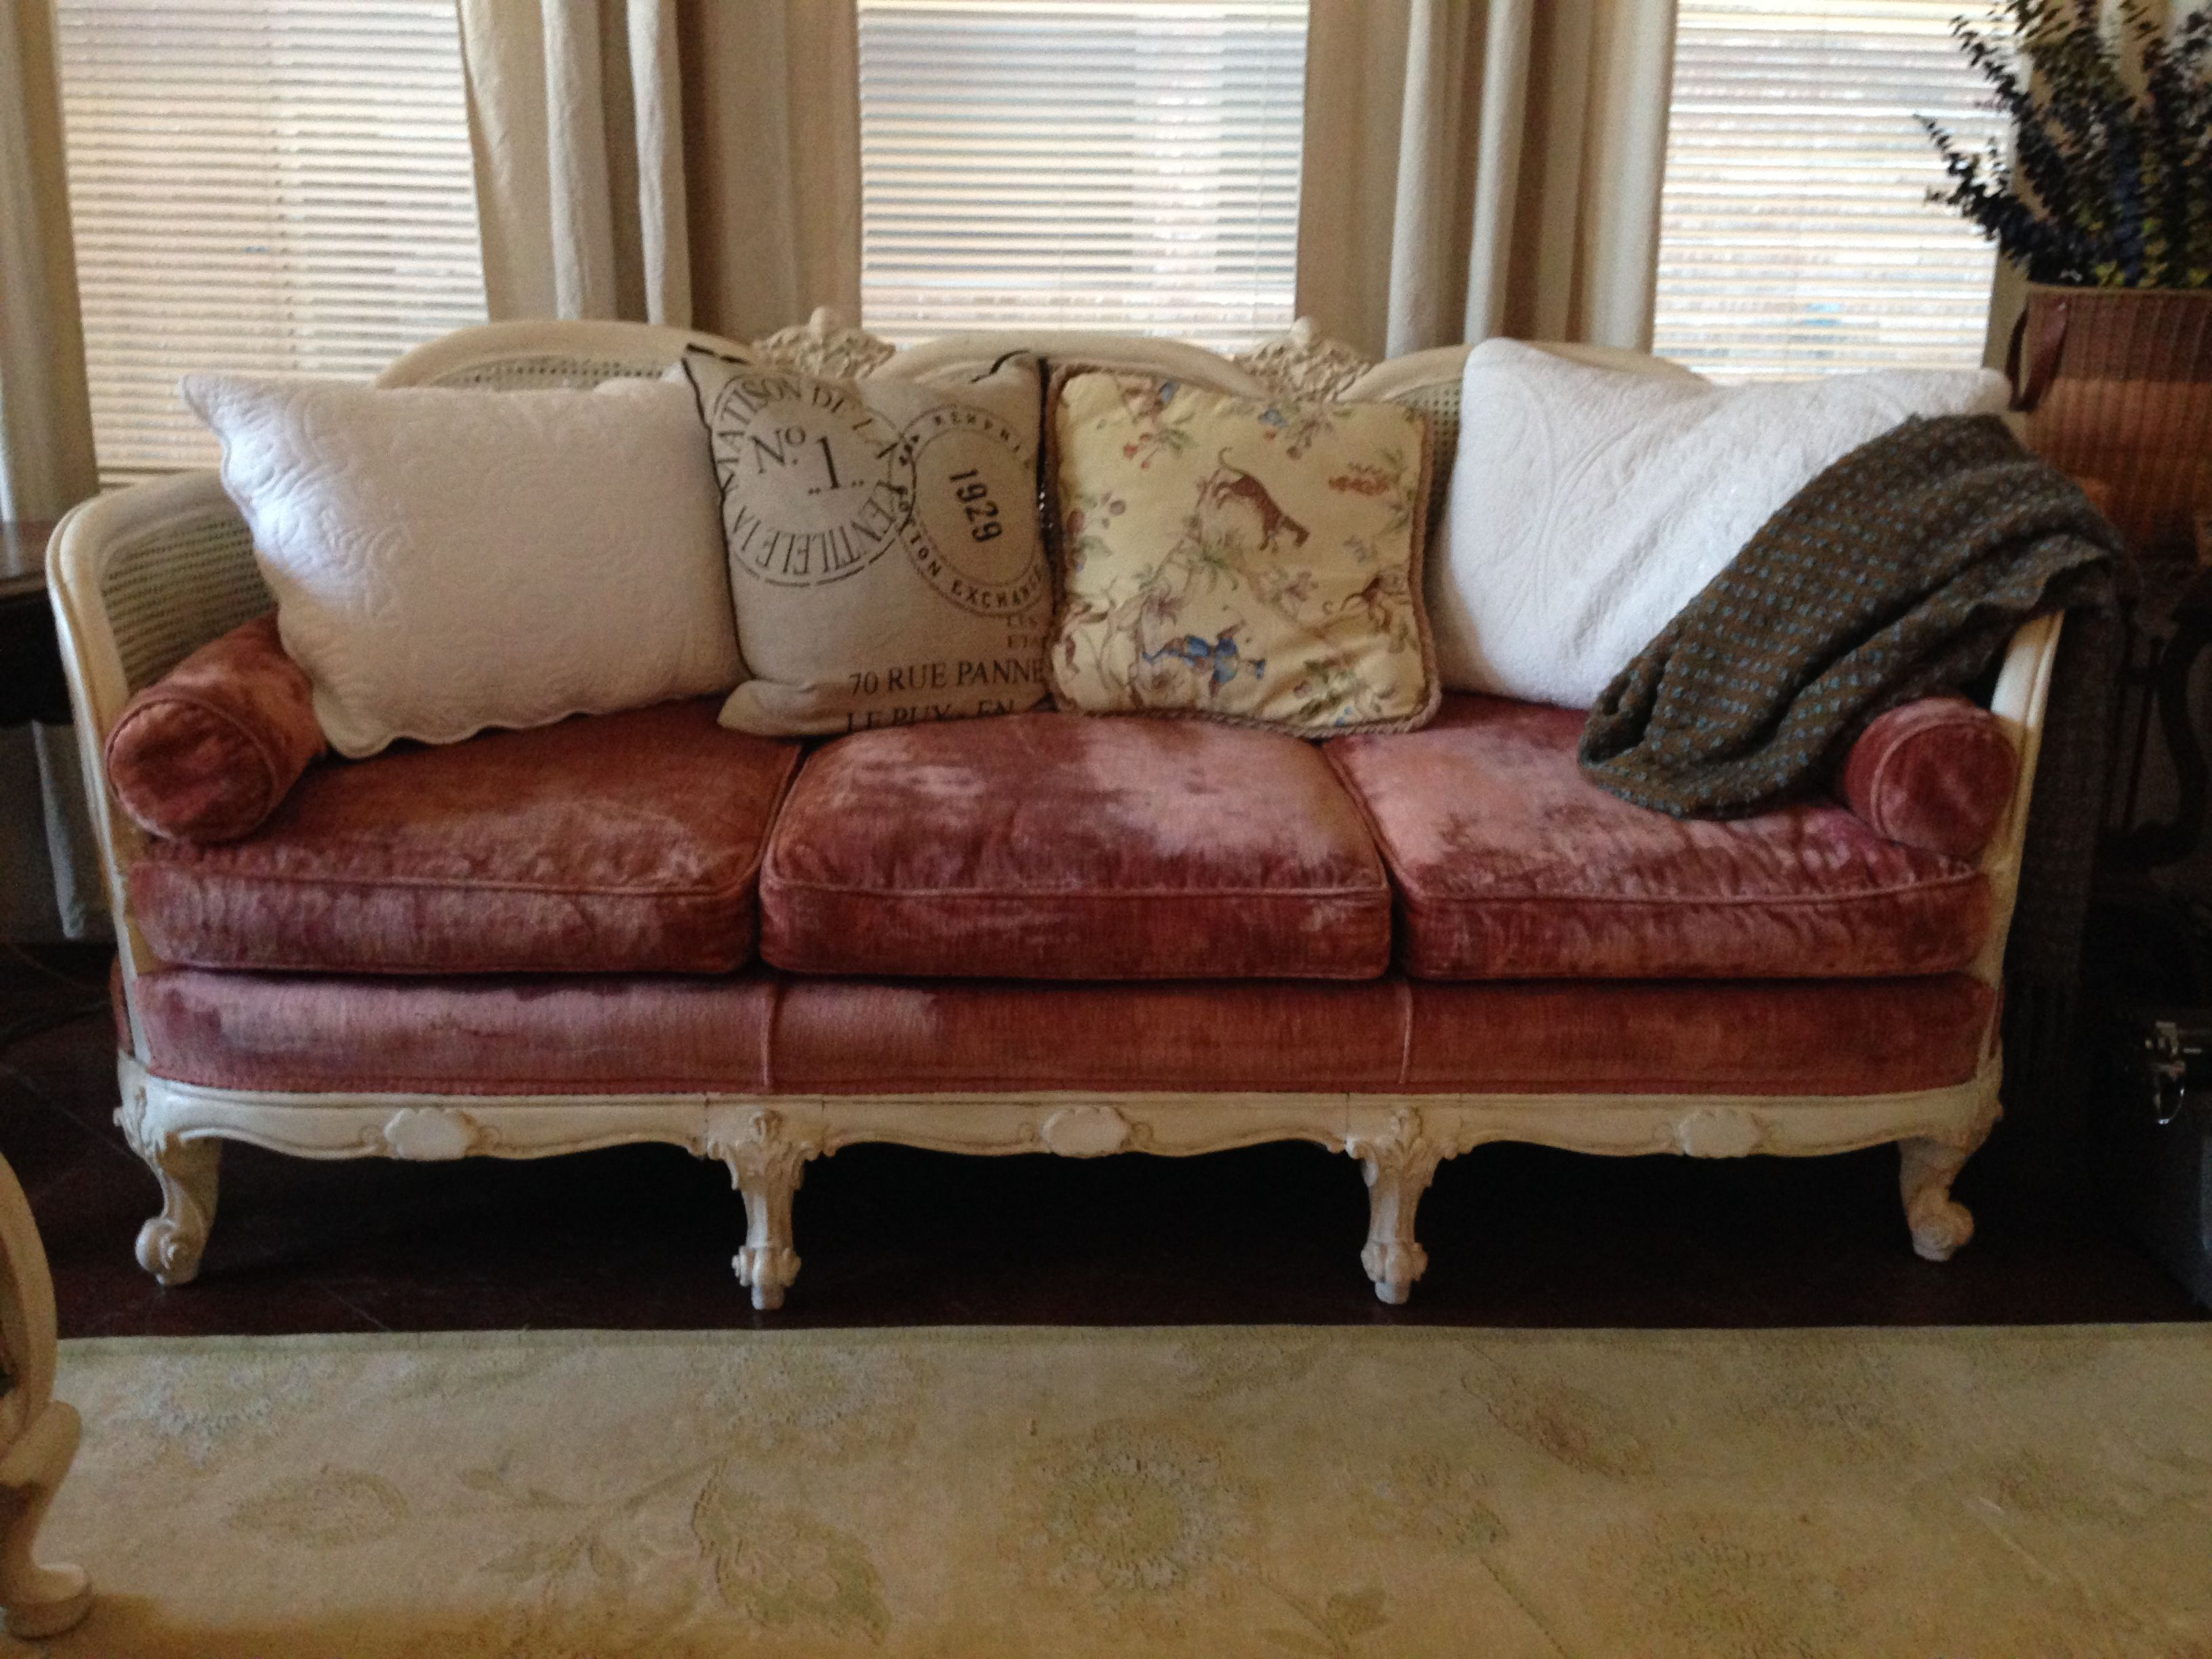 1930 Cane Back Sofa Coffee Table And Set Antique French The Joy Of Having A Vision